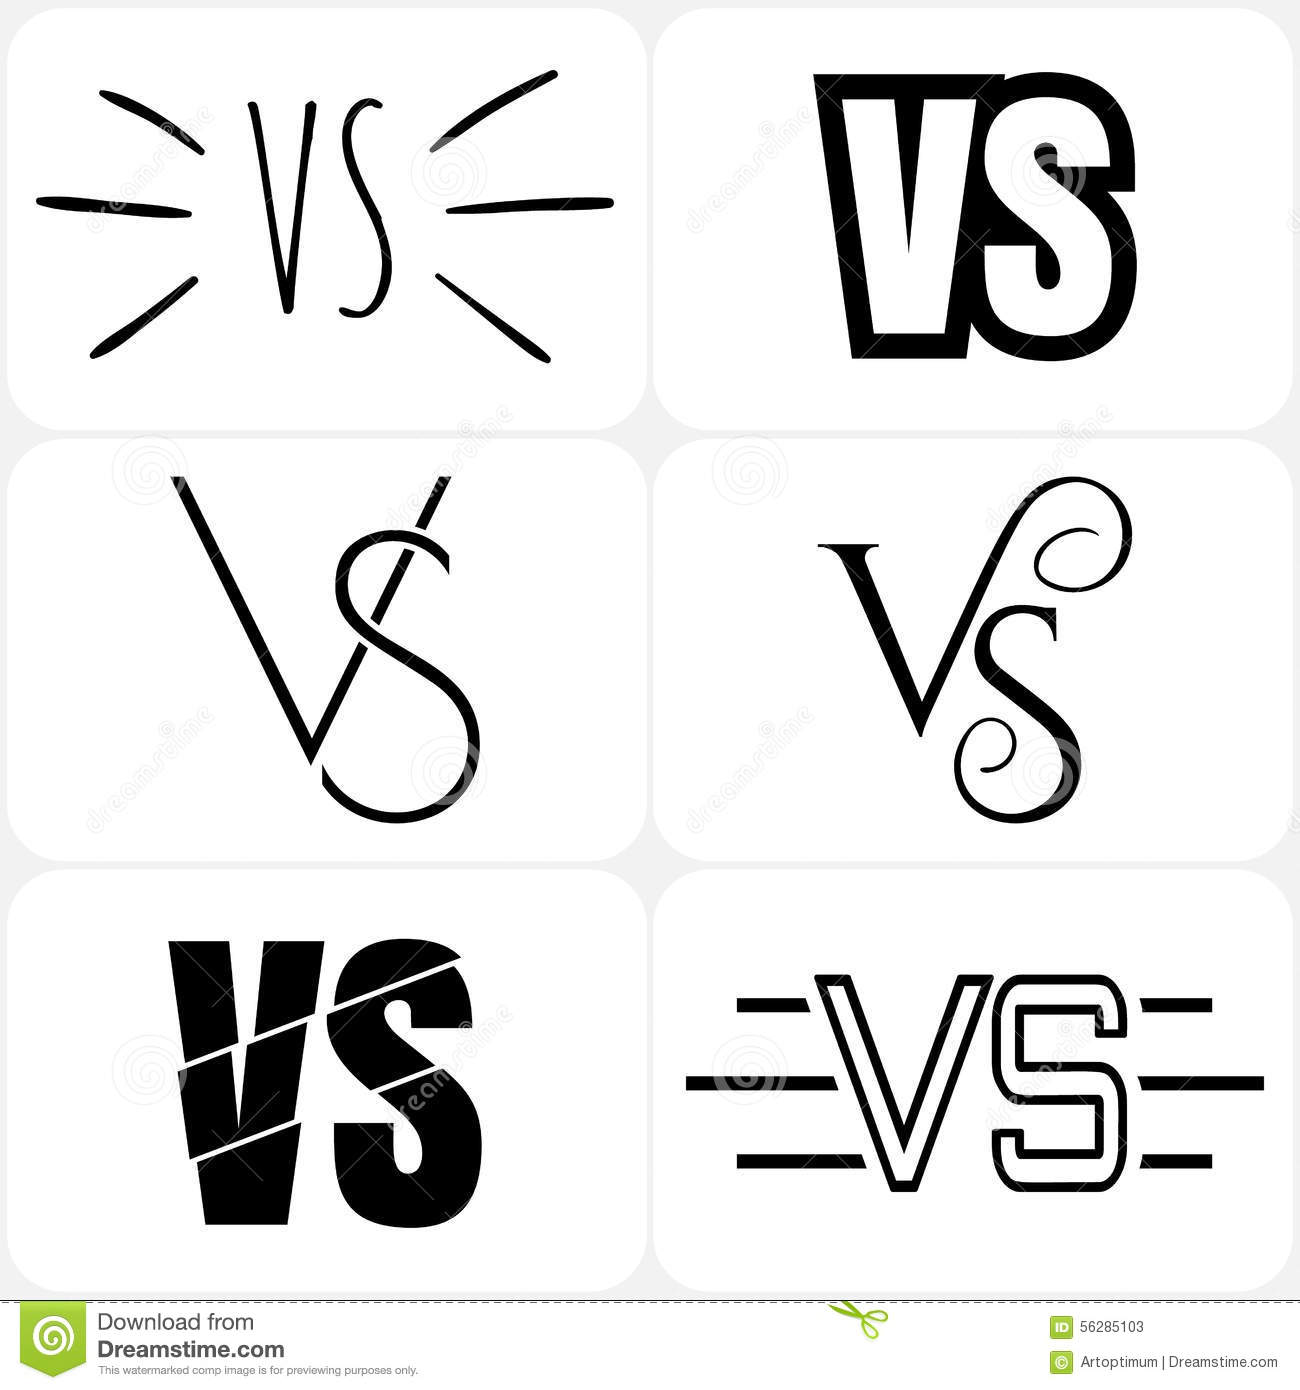 Versus letters logo black v and s symbols stock vector versus letters logo black v and s symbols biocorpaavc